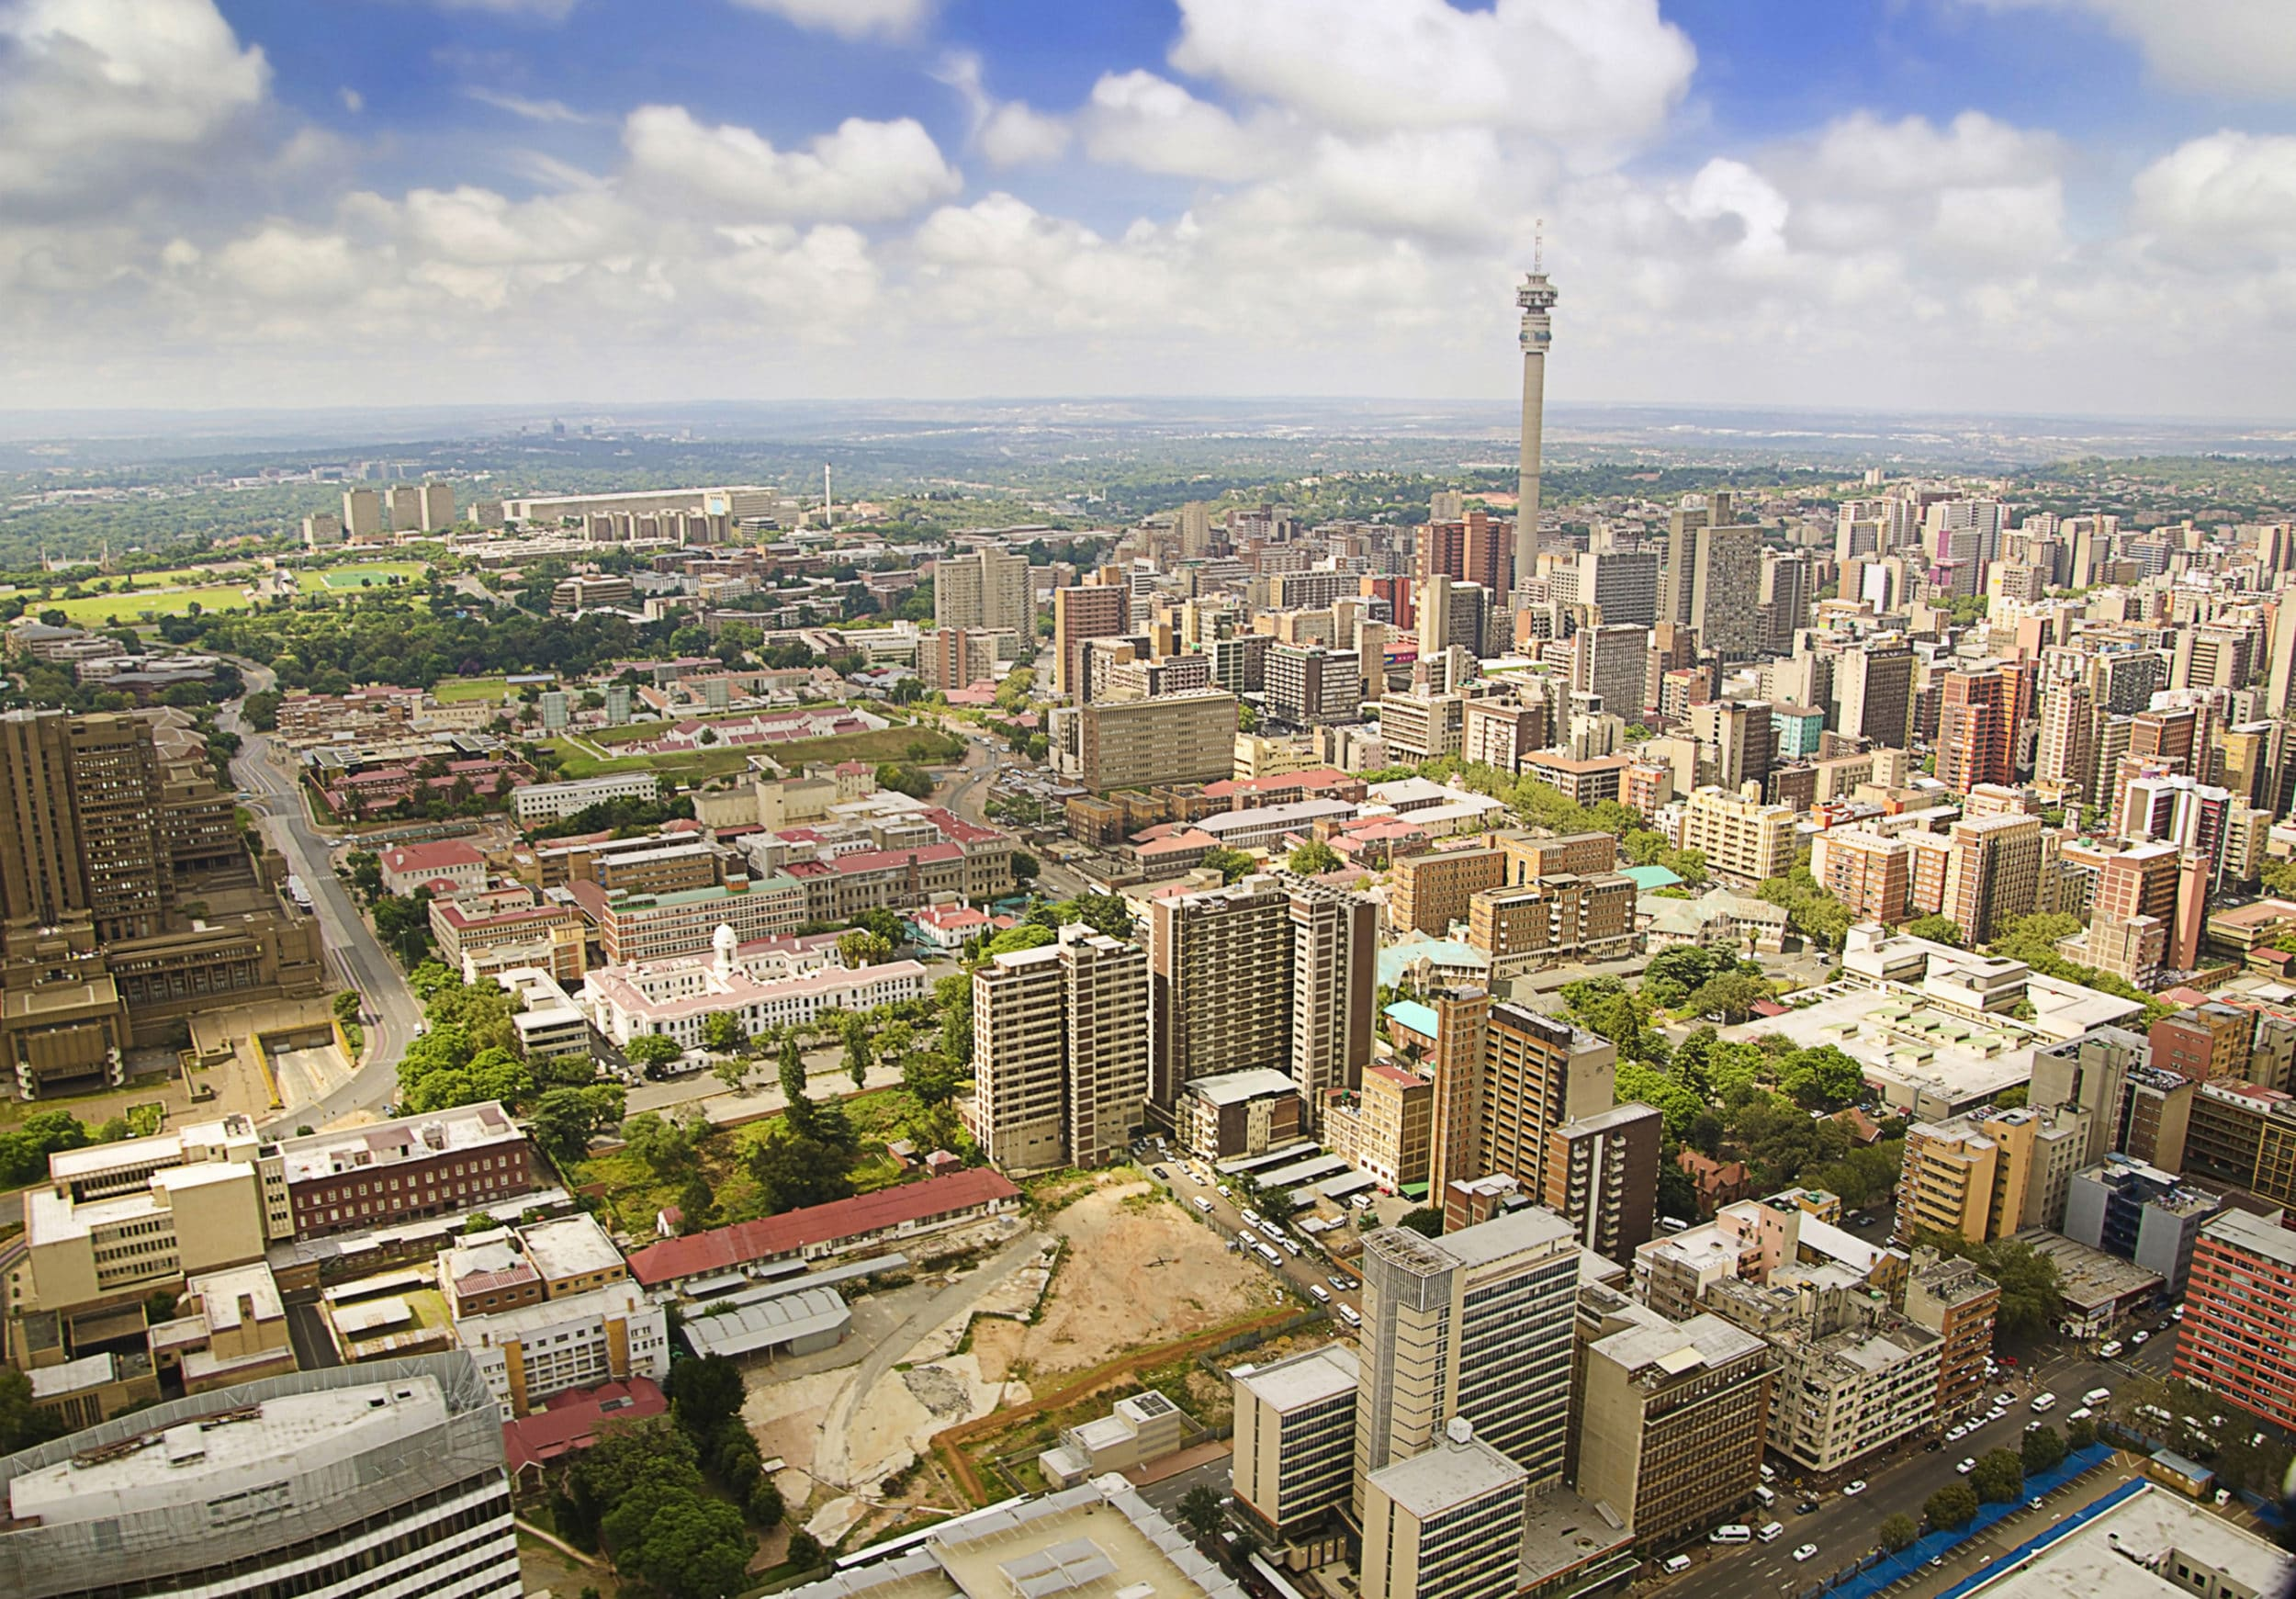 Africa city break: Things to do in Johannesburg